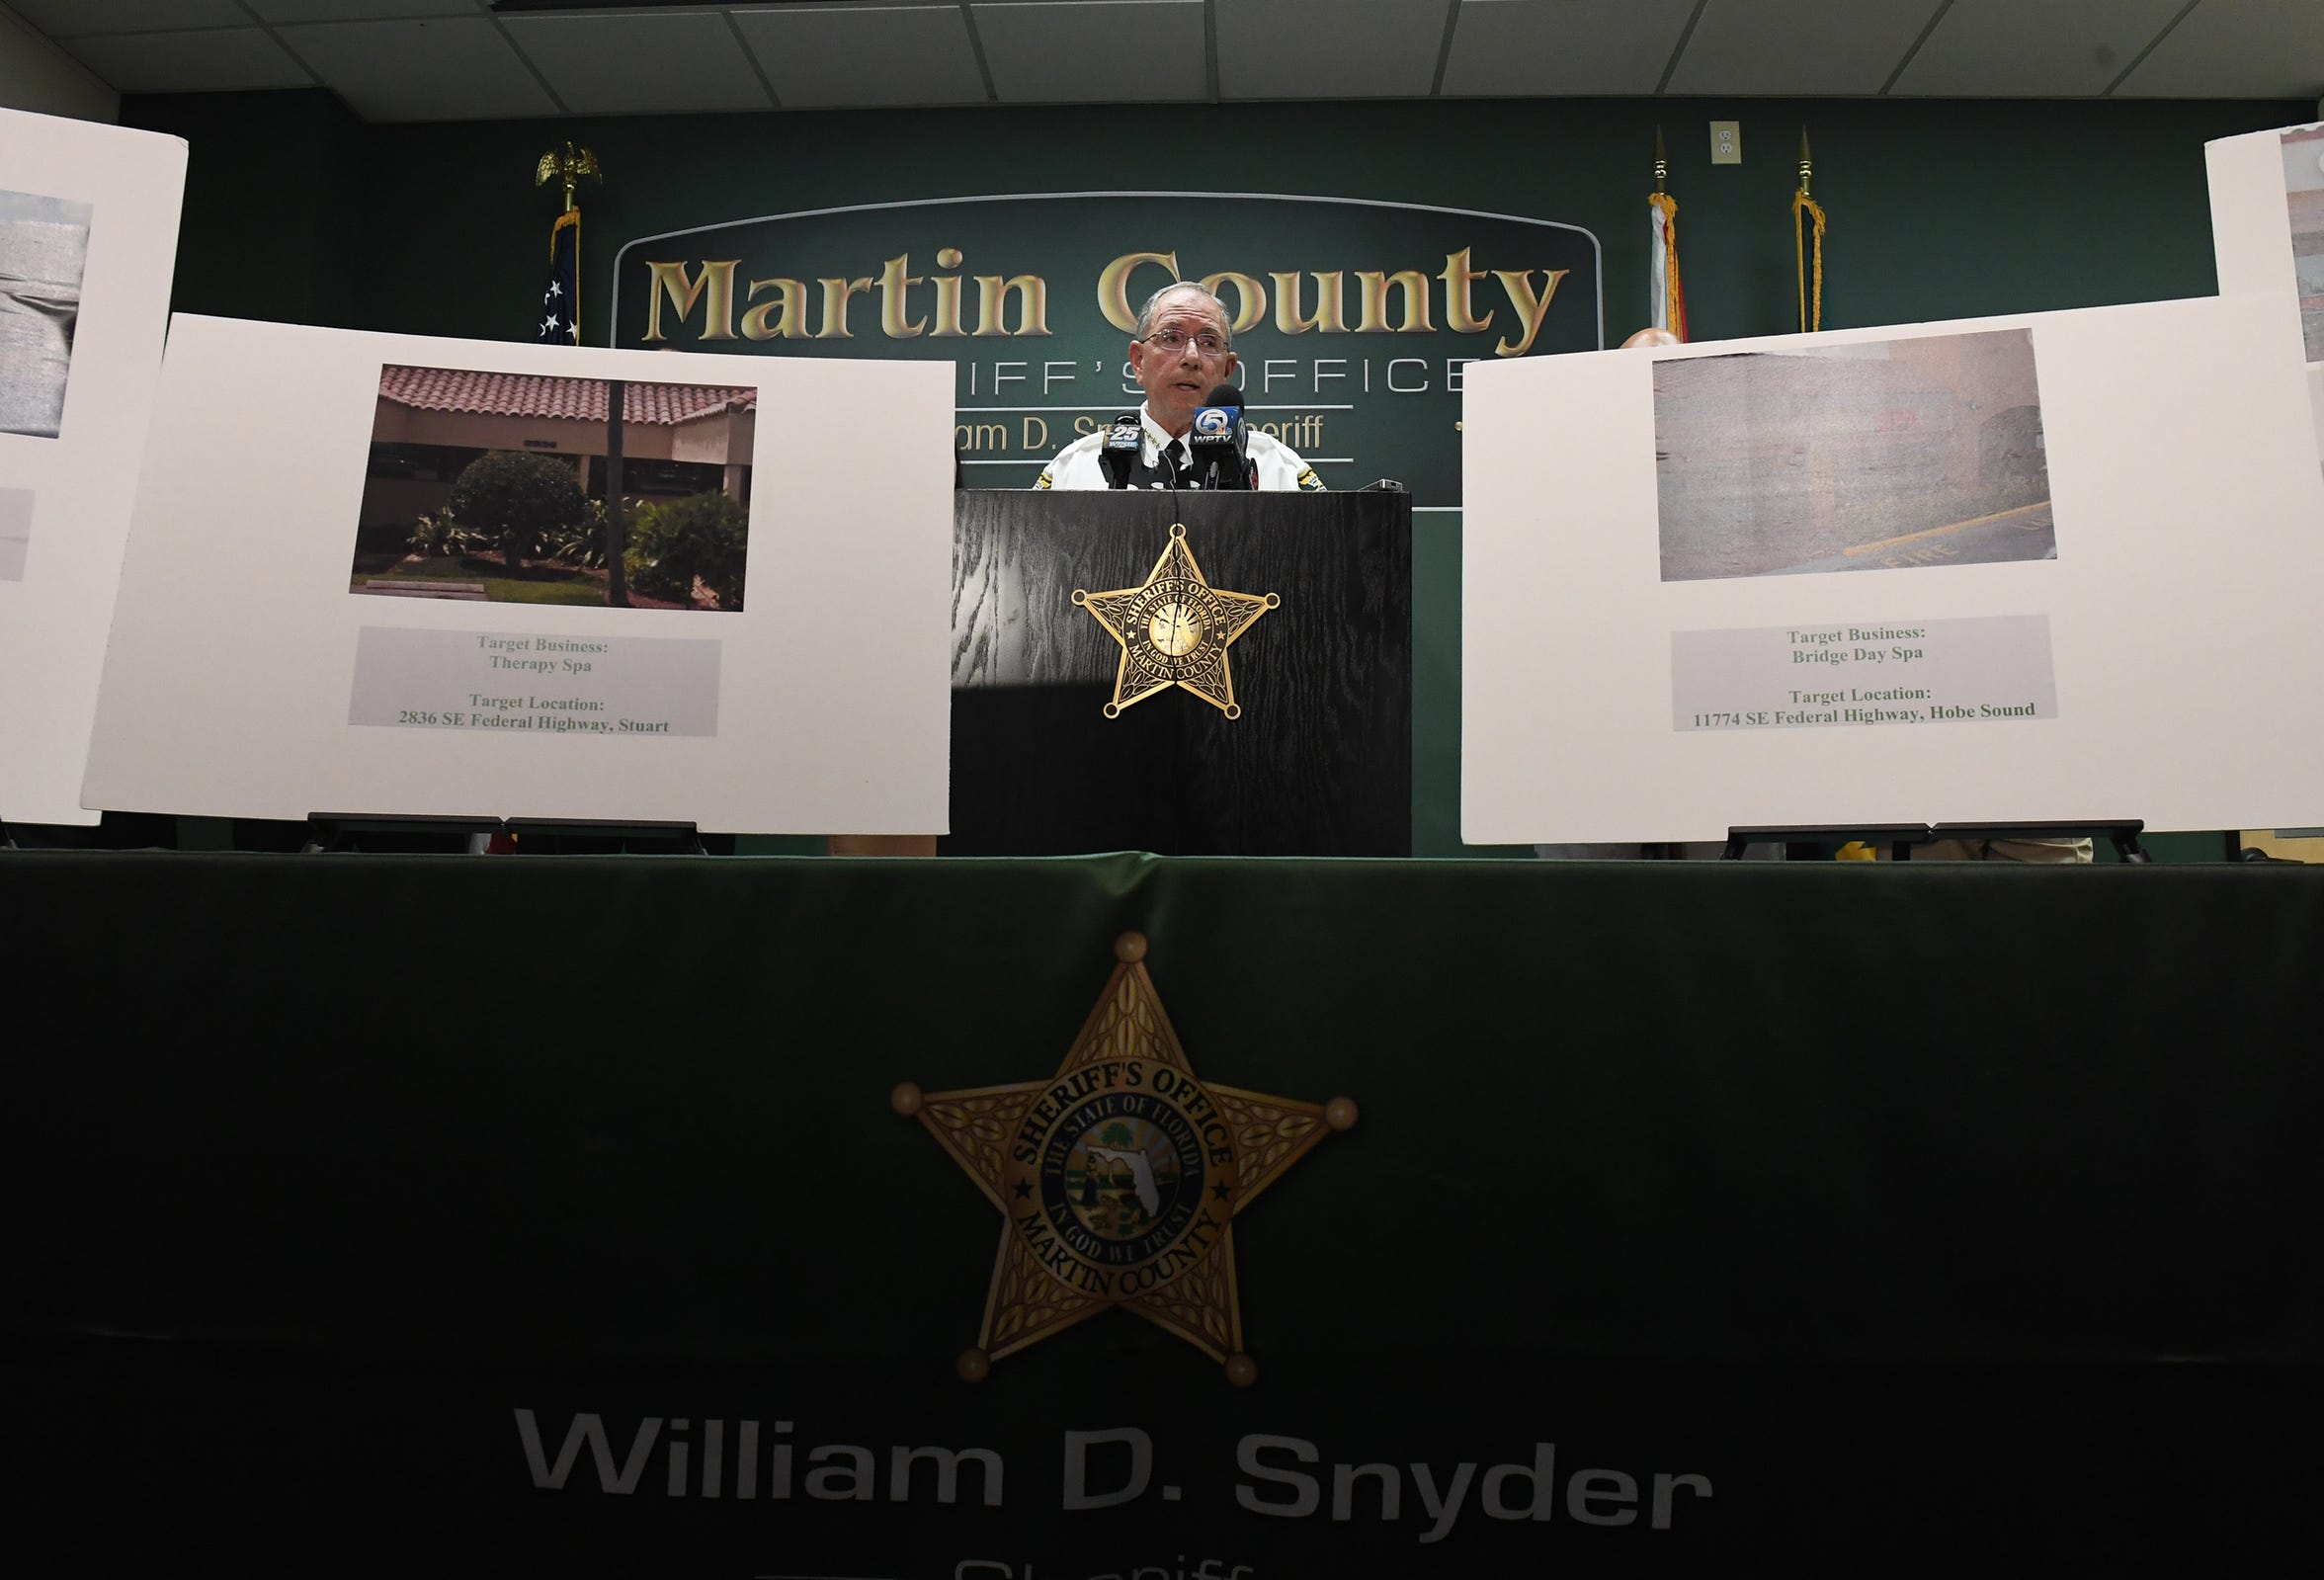 Martin County Sheriff William Snyder held a news conference Tuesday, Feb. 19, 2019, at the Martin County Sheriff's Office to discuss an eight-month multi-agency case investigation involving human trafficking and prostitution.